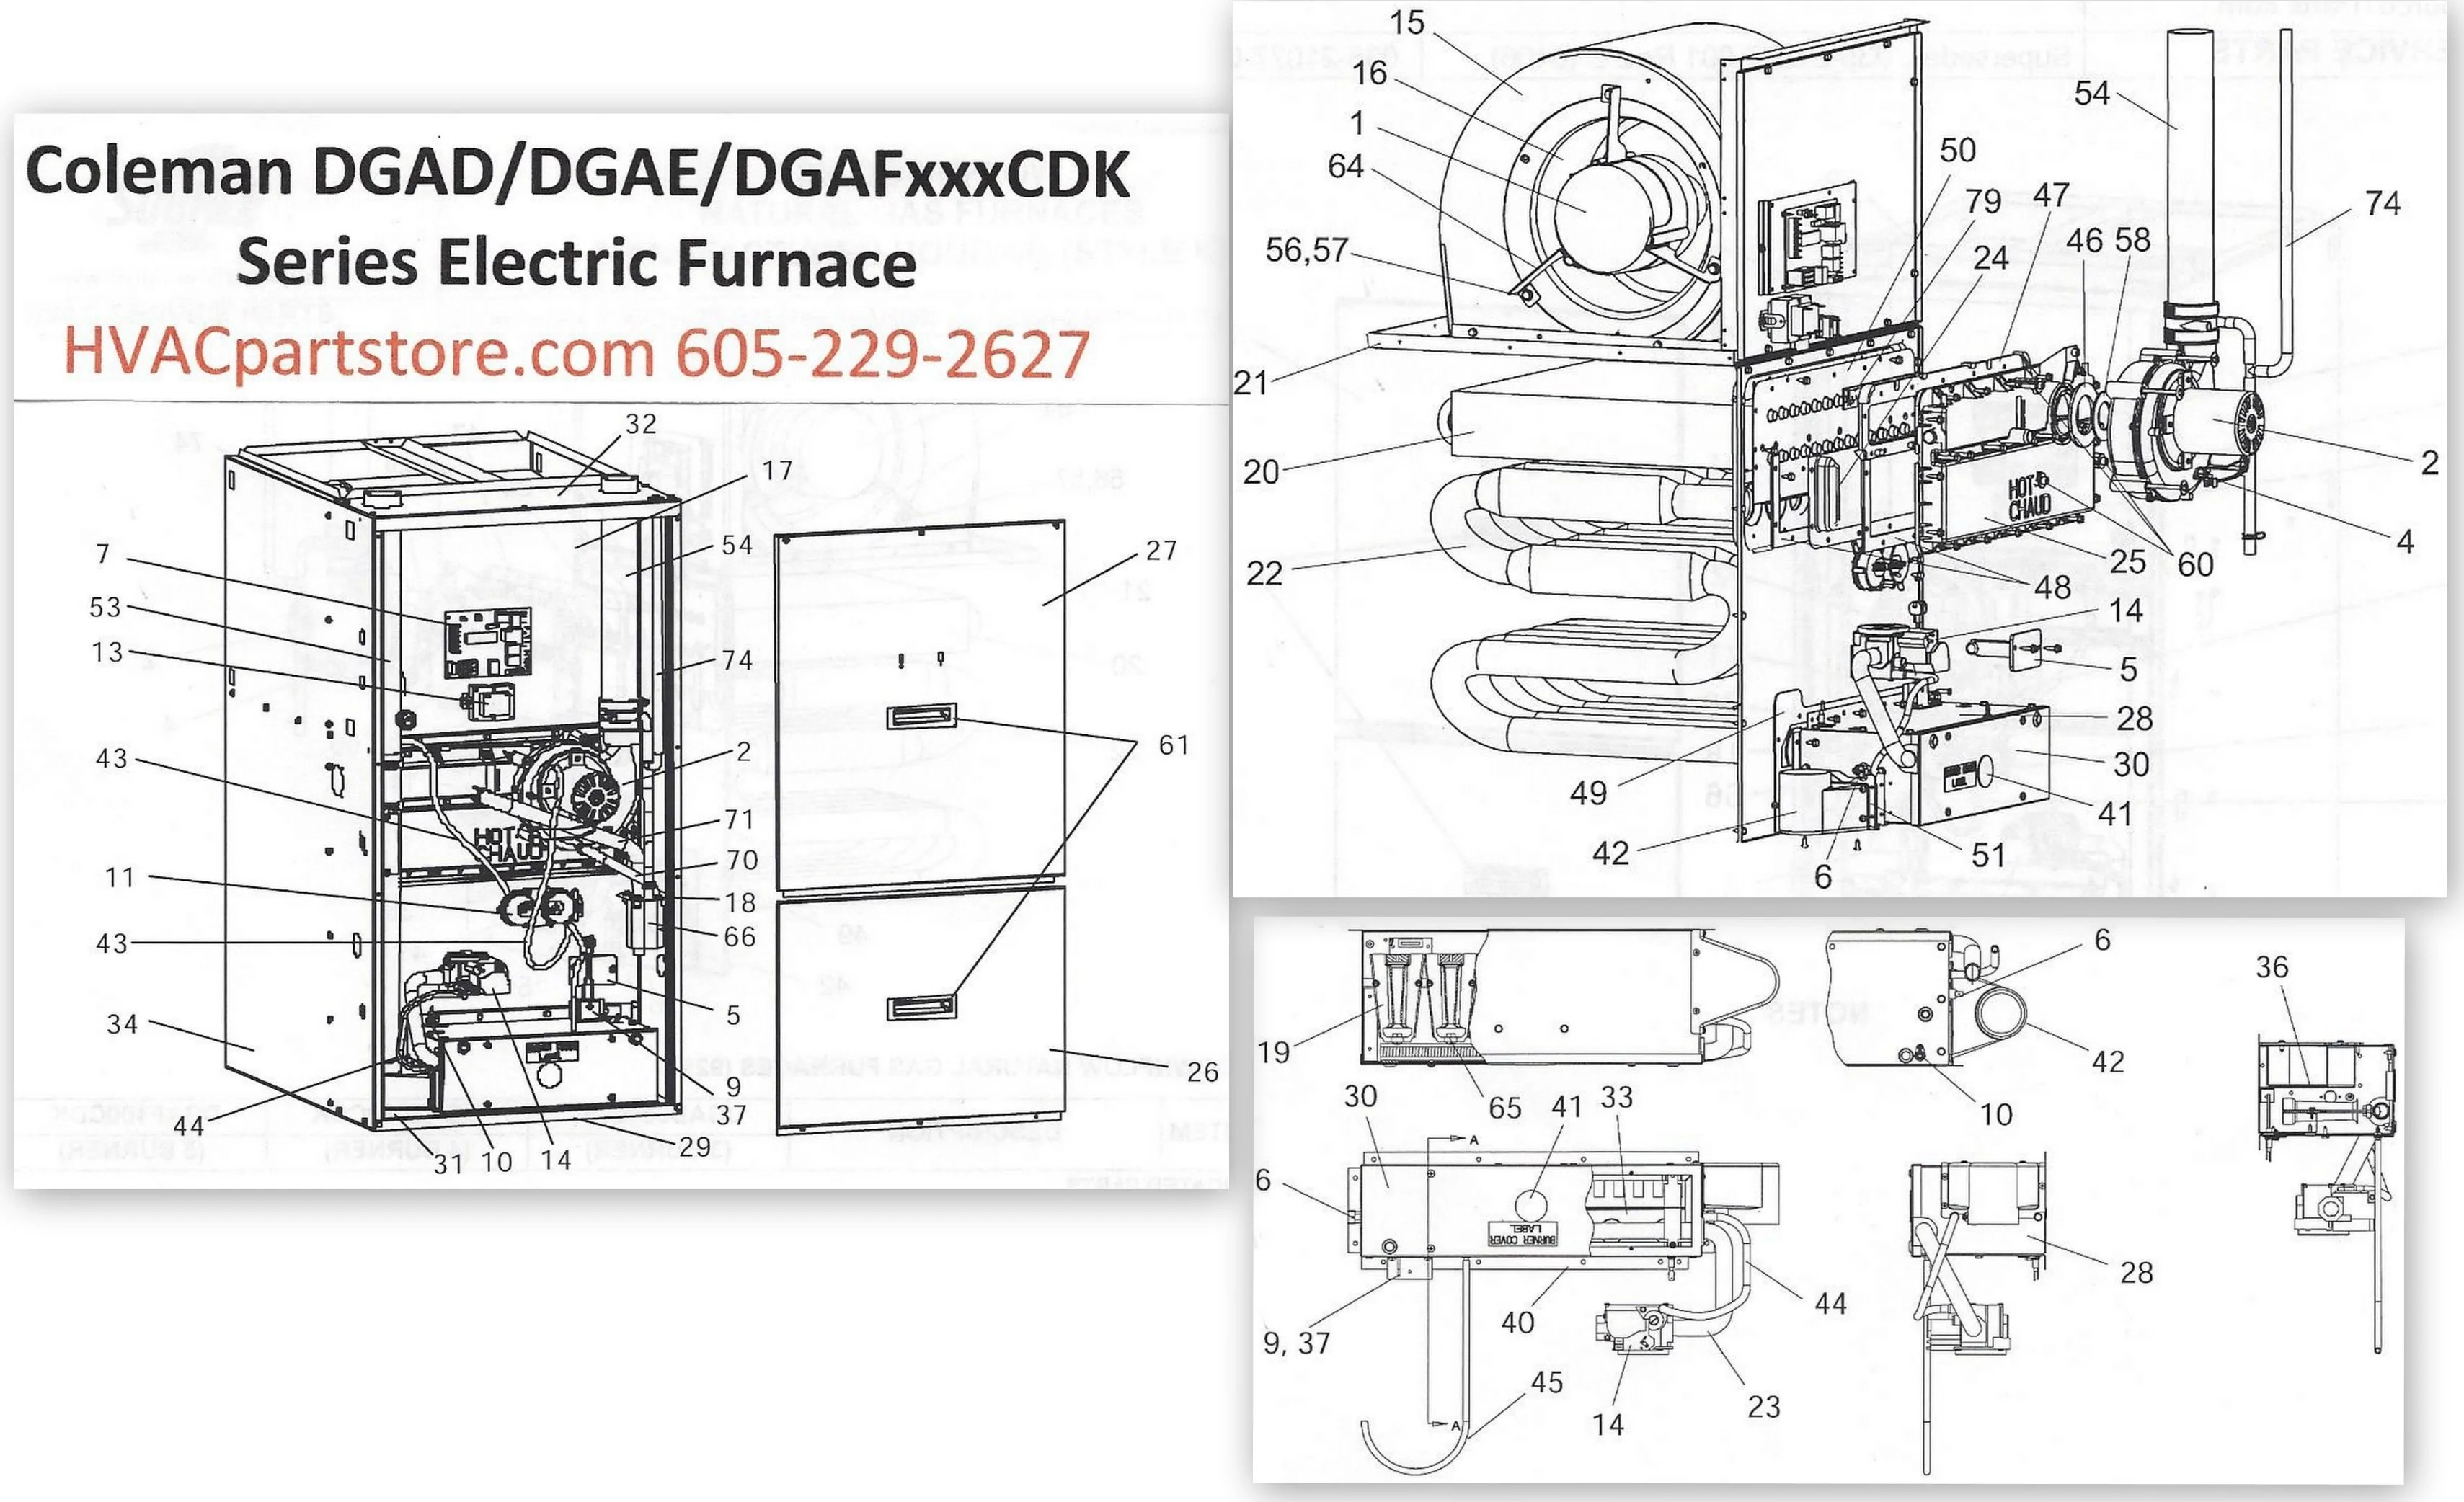 DGAD060CDK Coleman Gas Furnace Parts – HVACpartstore